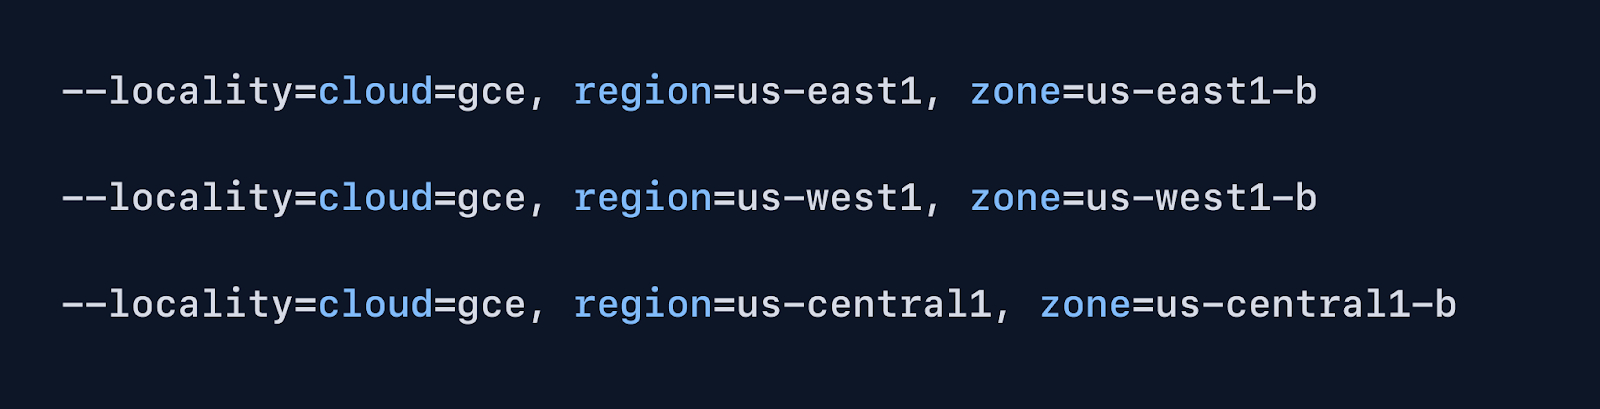 Example of CockroachDB locality configurations